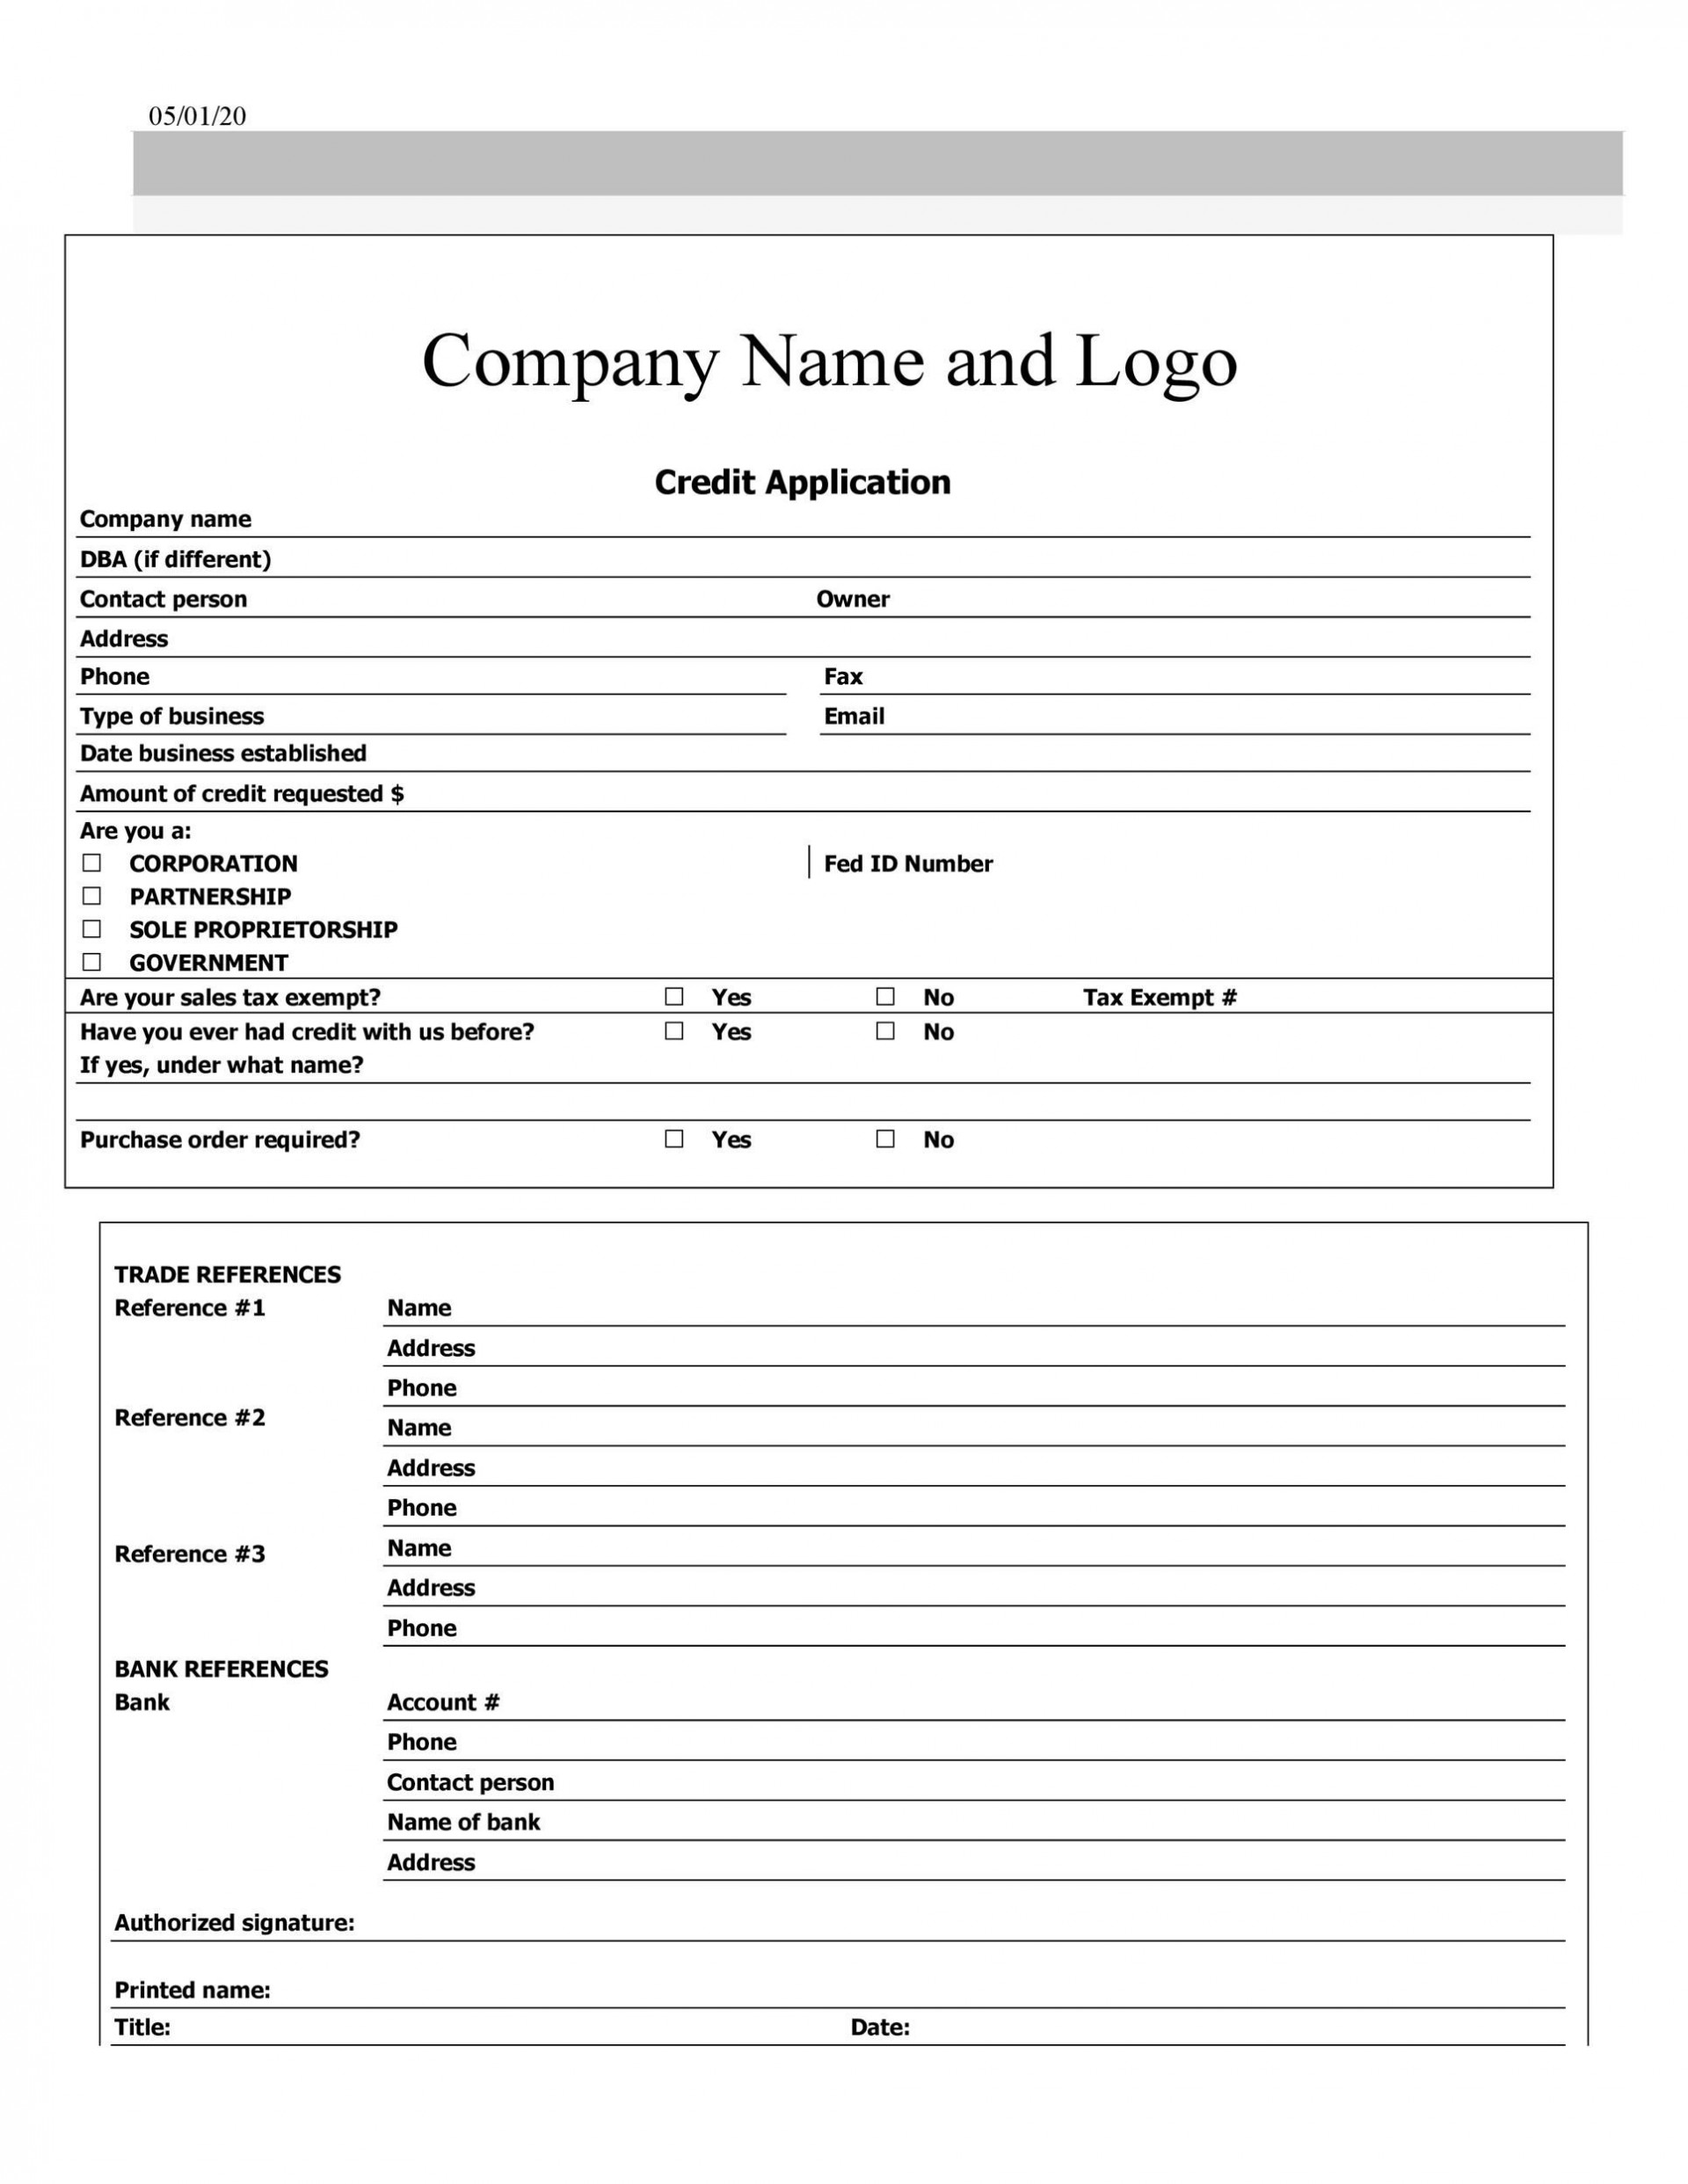 008 Fantastic Busines Credit Application Template Word Photo  Free South Africa Form1920